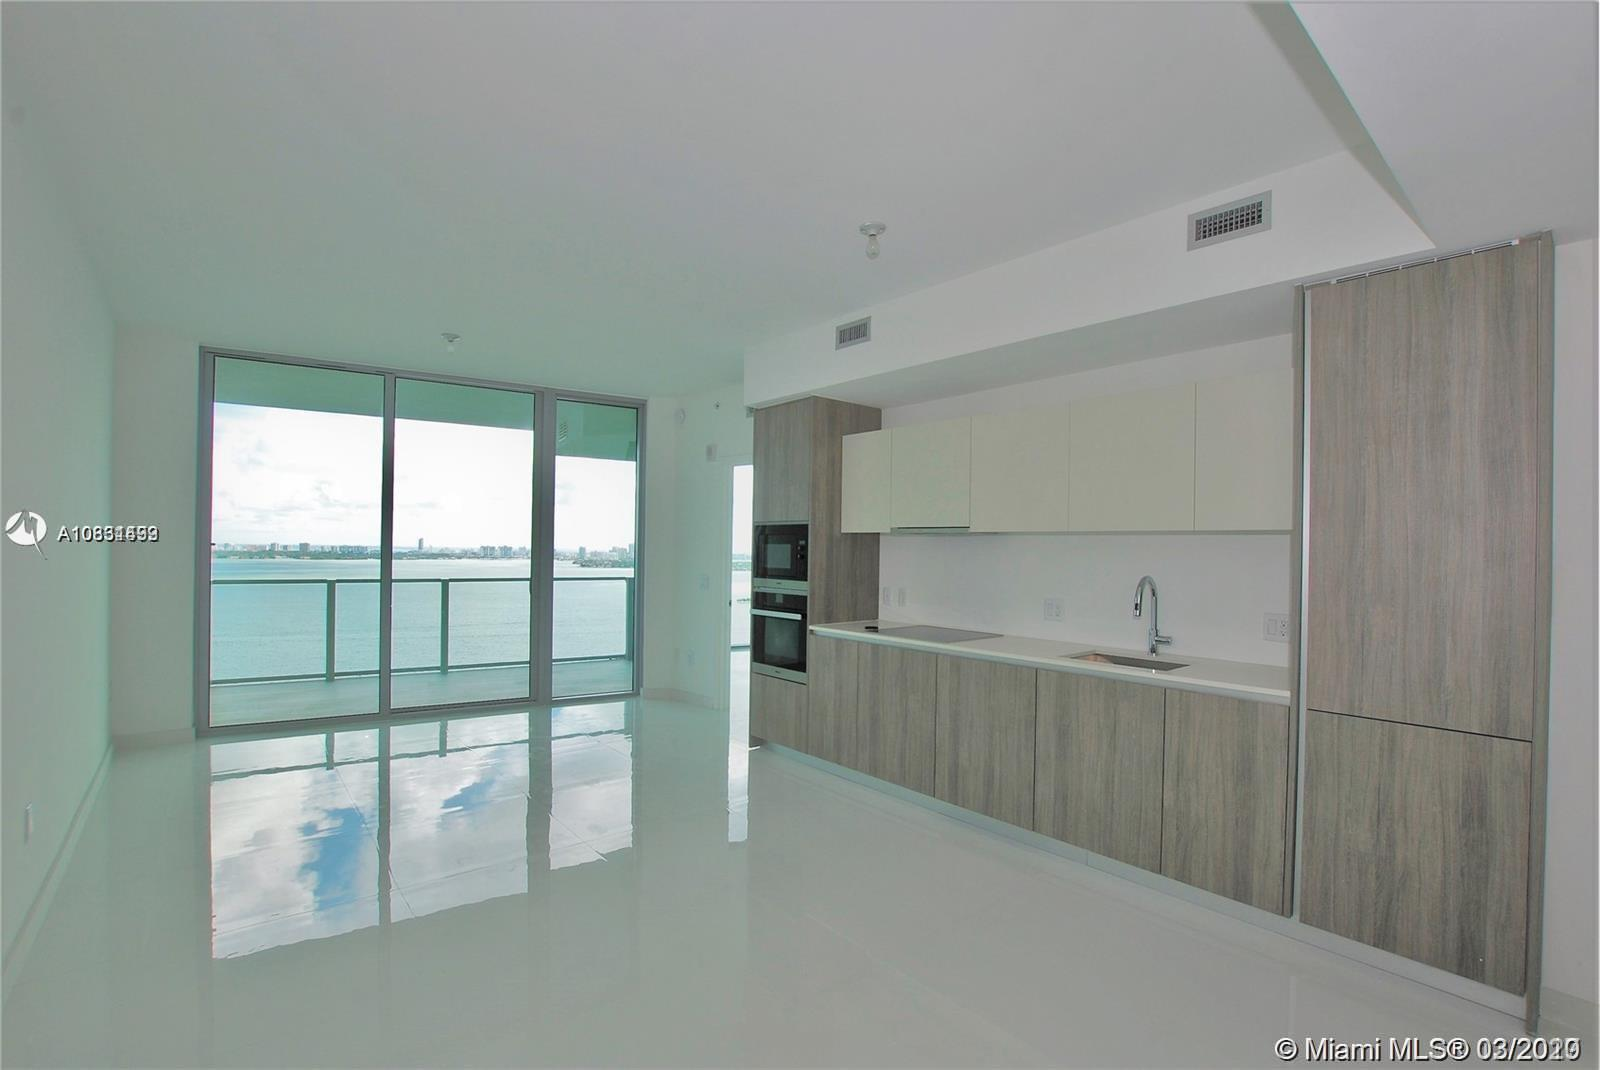 New Luxury apartment at Biscayne Beach in Miami's hottest neighborhood East Edgewater with stunning